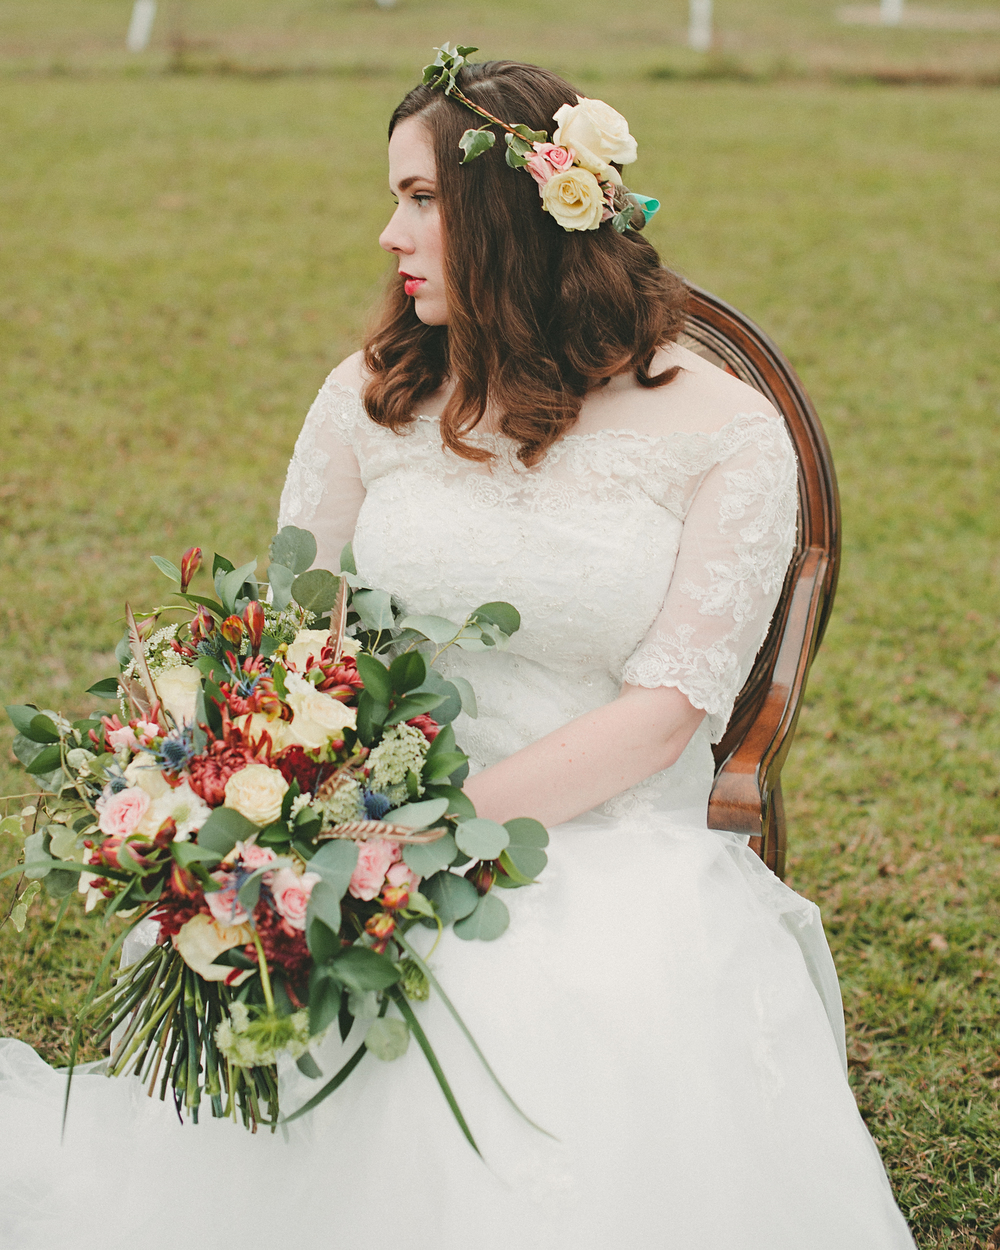 Ng-Photography-backyard-wedding-royal-hair-and-makeup-ivory-and-beau-wedding-planning-wedding-flowers-savannah-florist-savannah-flowers-savannah-weddings-savannah-wedding-savannah-event-planner-savannah-wedding-planner-savannah-rustic-wedding-24.jpg